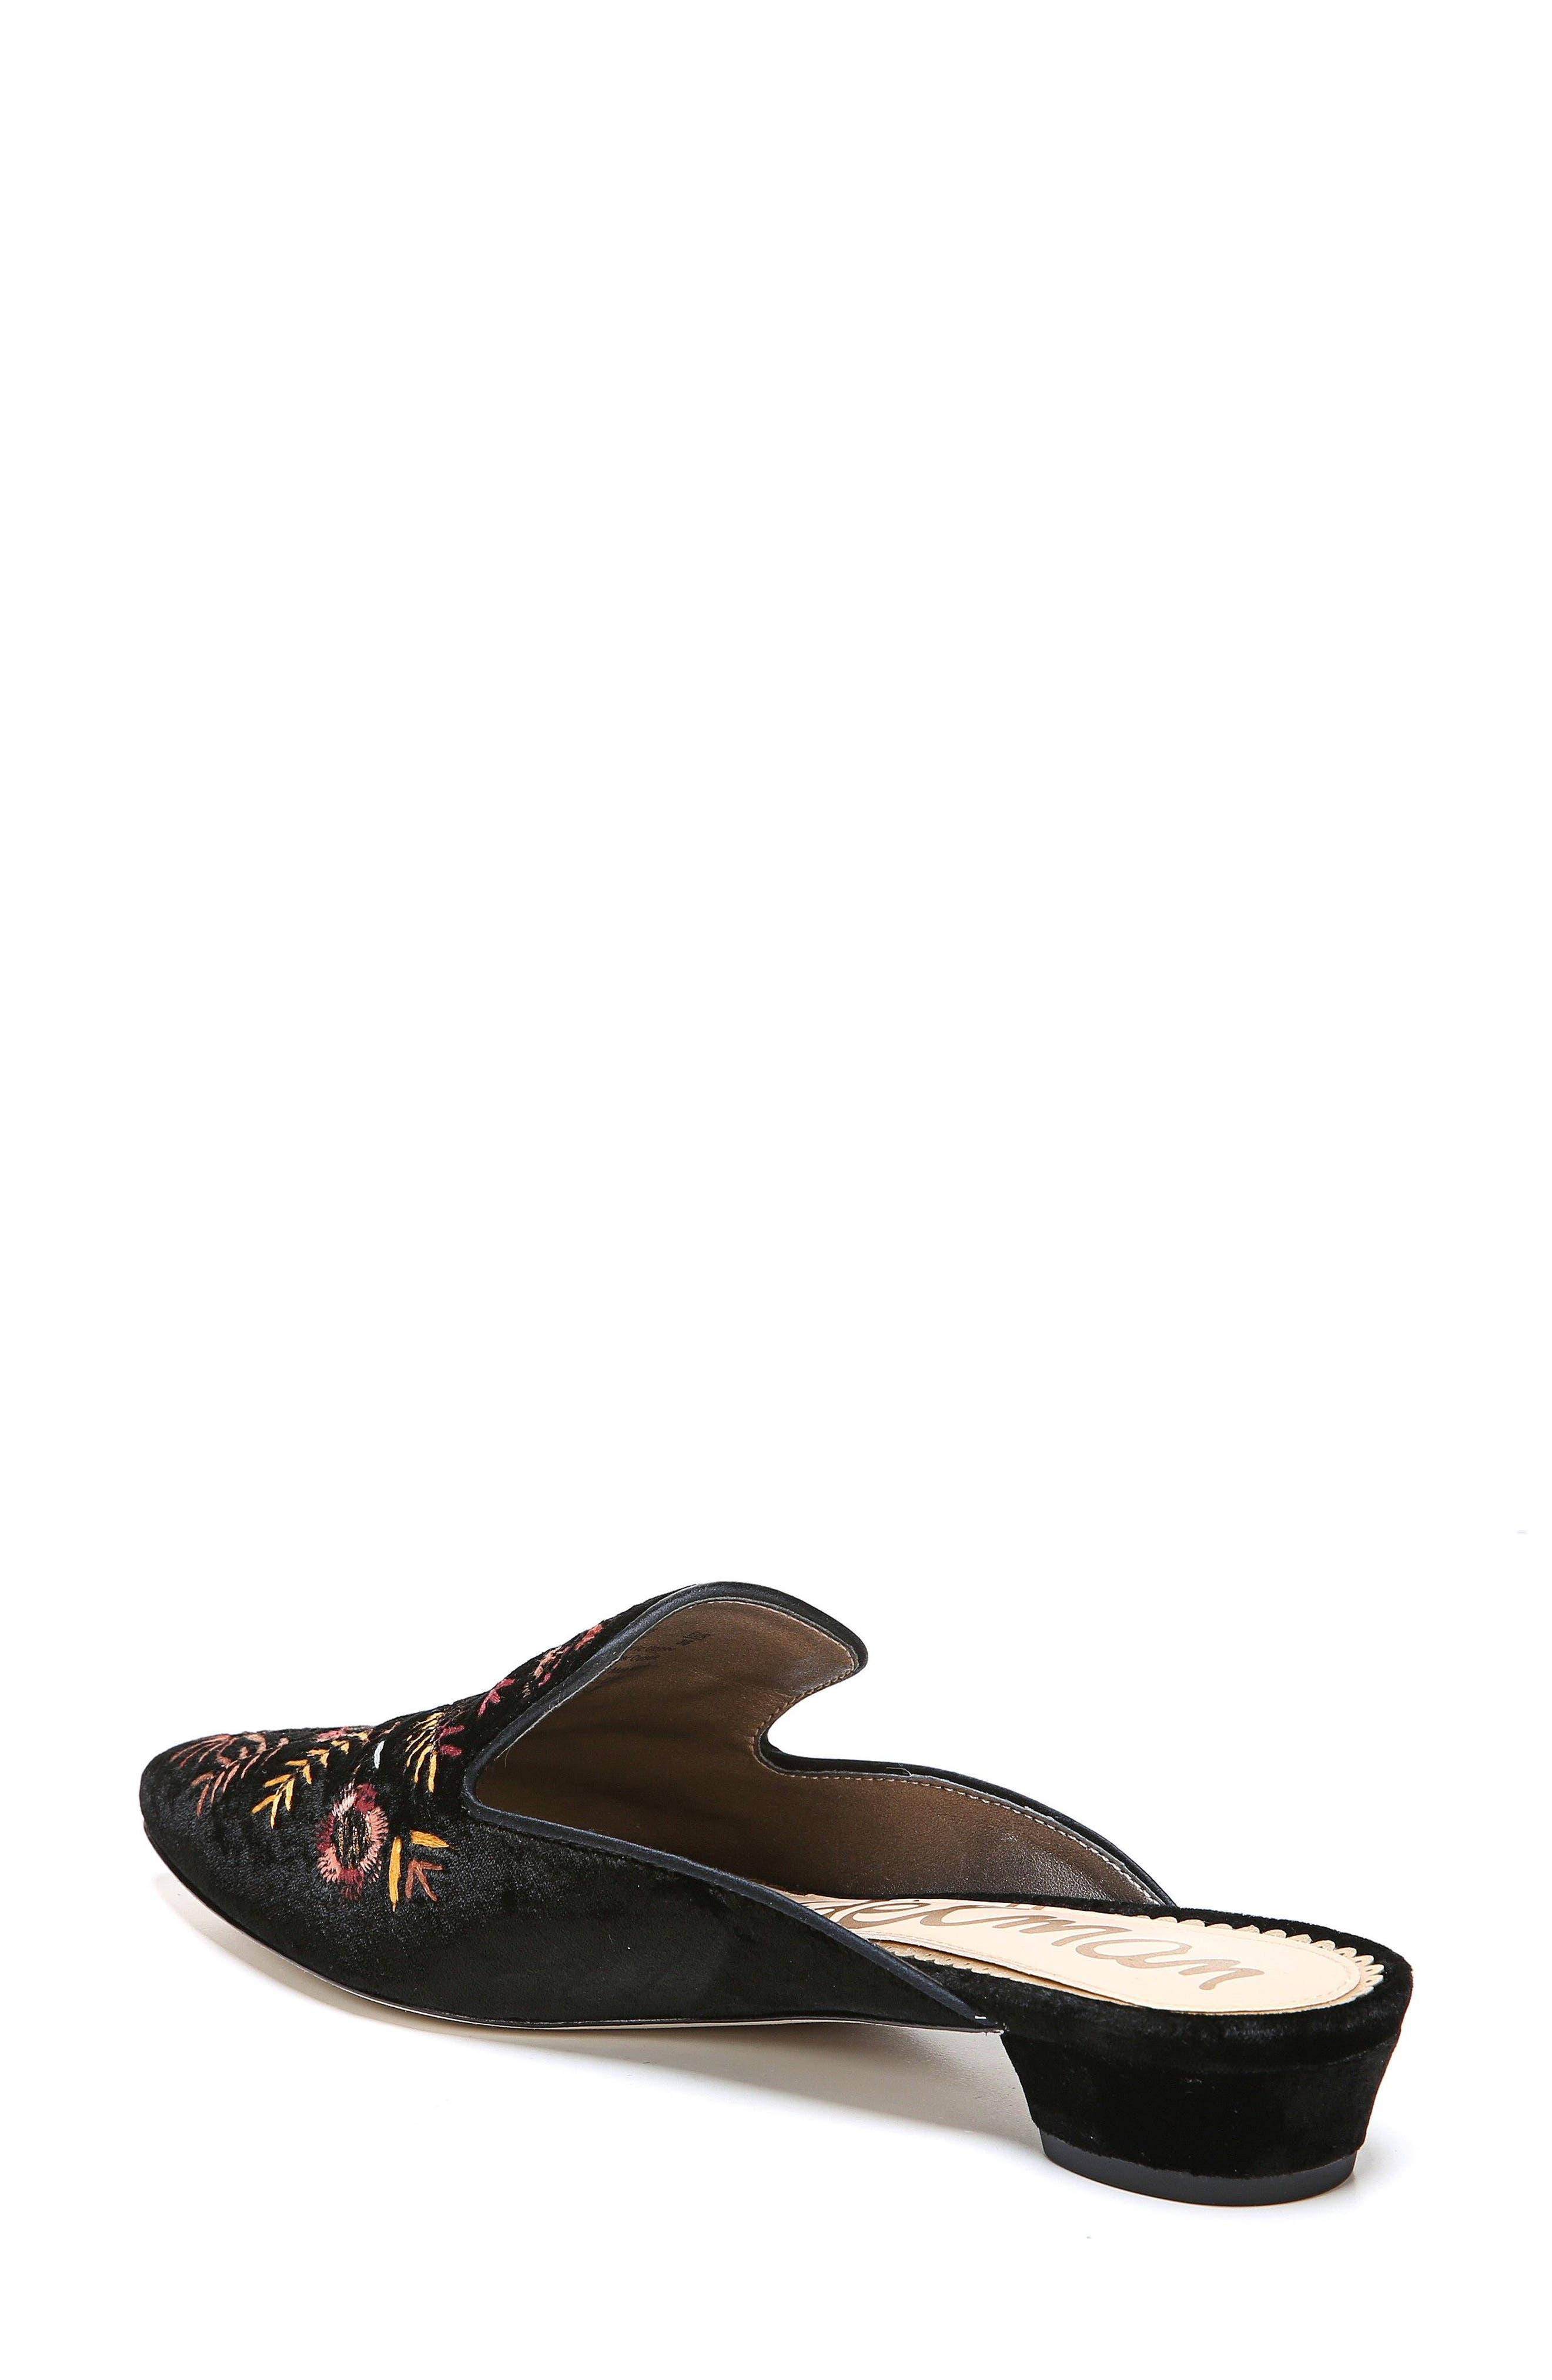 Ansley Pointy Toe Loafer Mule,                             Alternate thumbnail 2, color,                             001